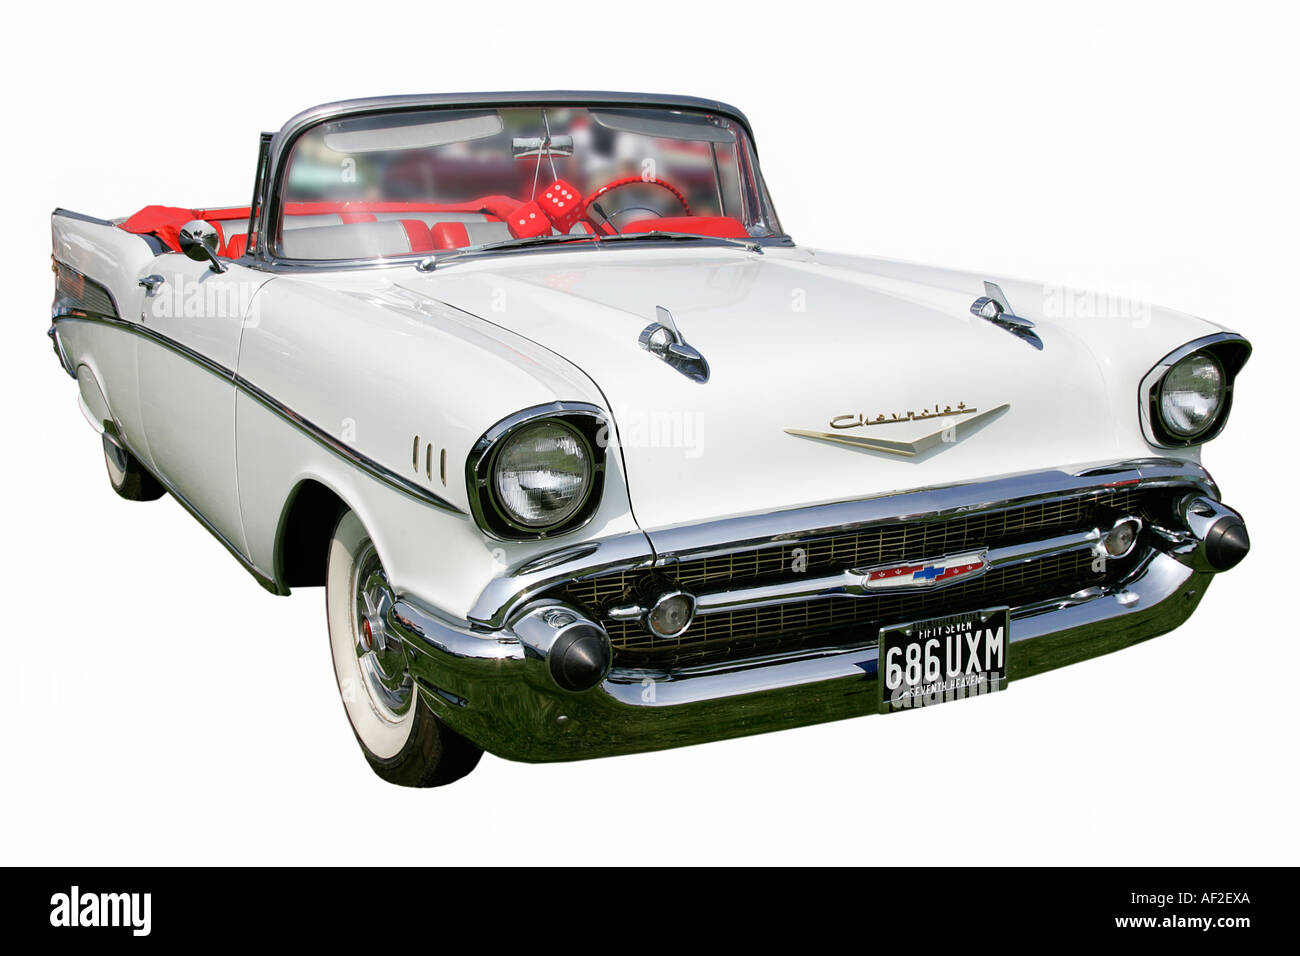 American old car classic history vehicle vintage antipodes symbol collector age golden motoring transport restoration driving - Stock Image